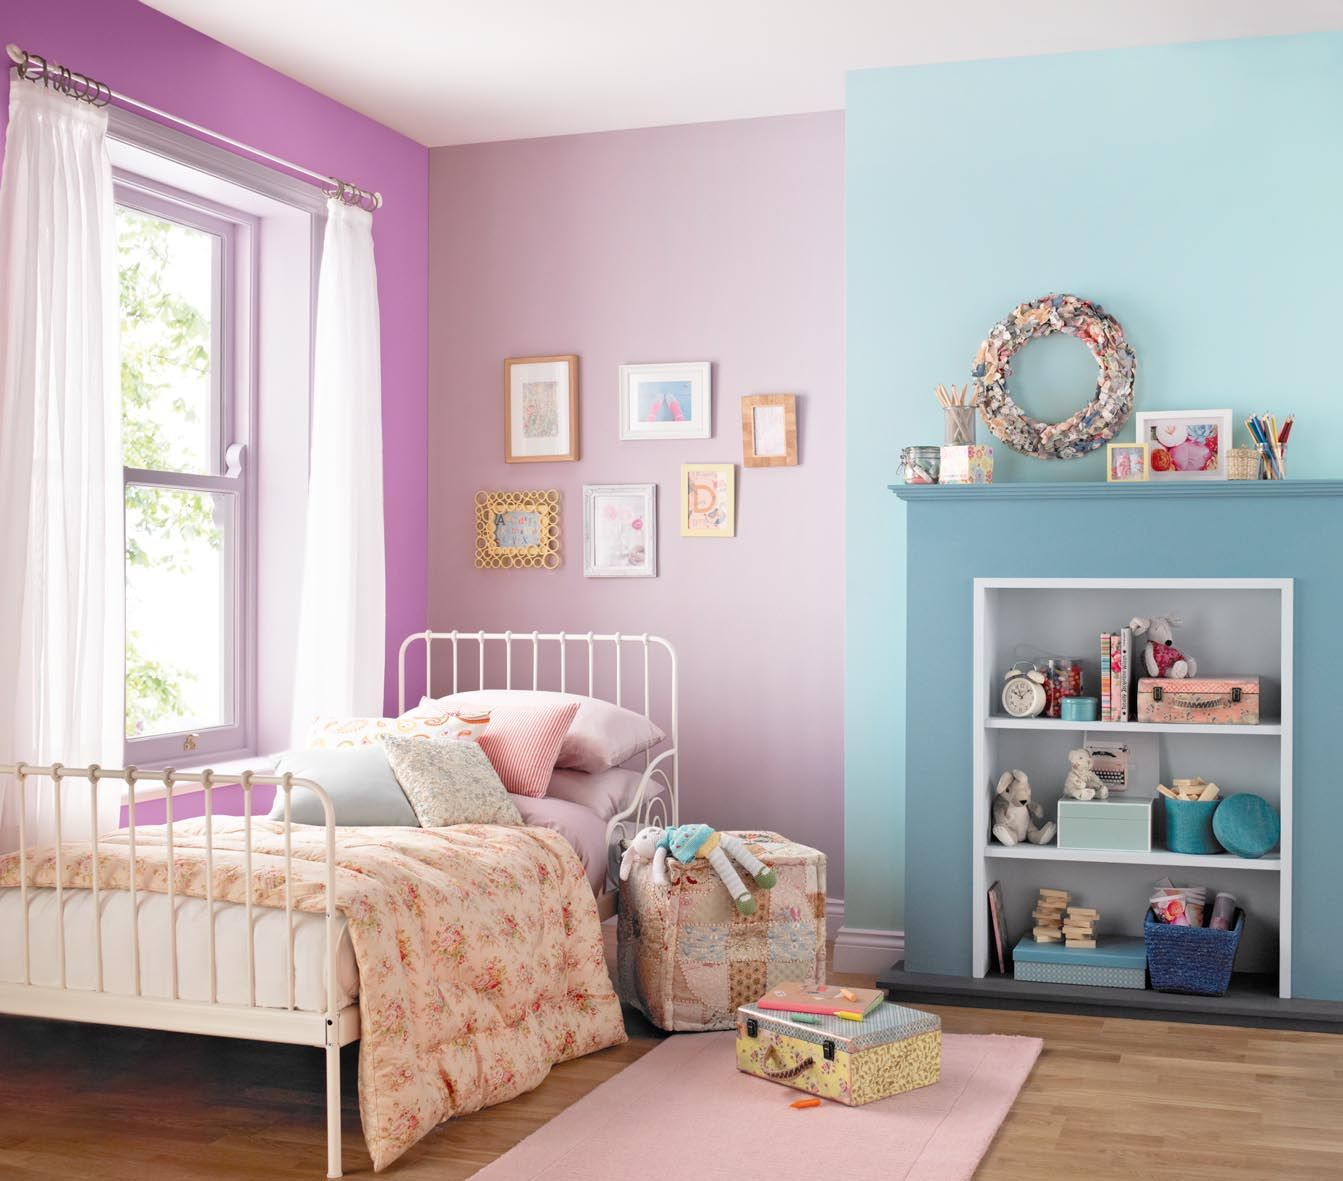 Painted Bedrooms Childrens Bedroom Painted With Crown Easyclean Paint In